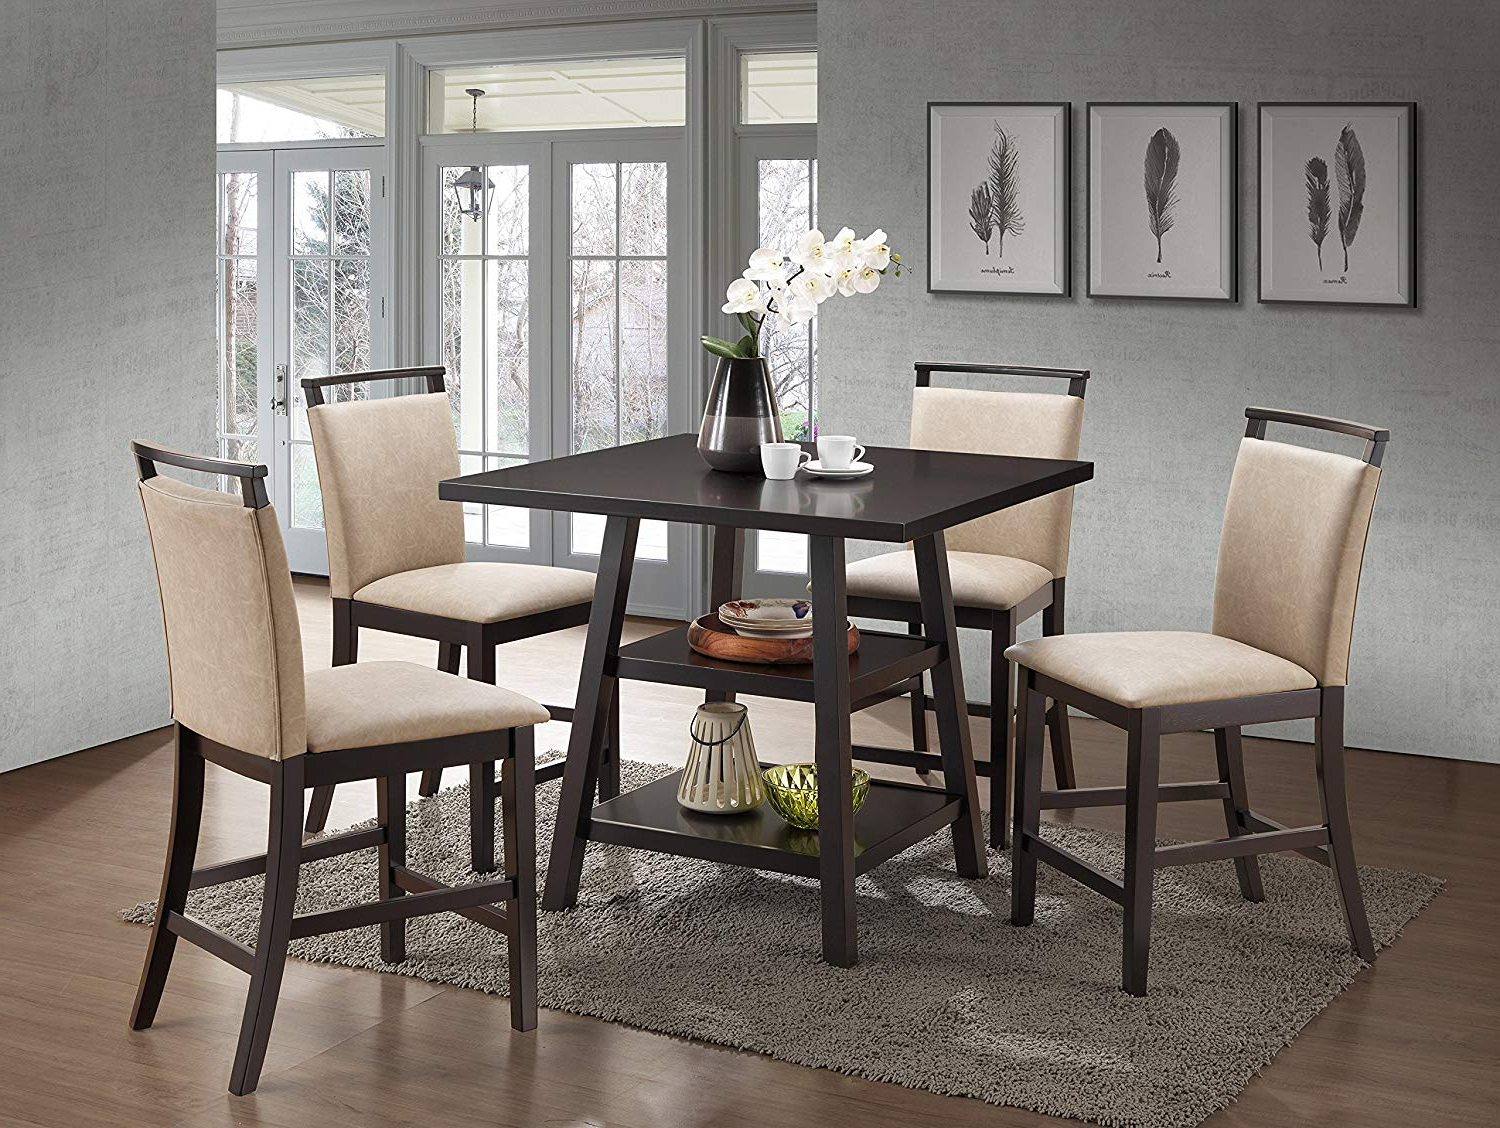 Cappuccino Finish Wood Classic Casual Dining Tables In Current Kings Brand Aloe 5 Piece Cappuccino Wood Counter Height Dining Set, Table  With 4 Clay Upholstered Chairs (Gallery 2 of 30)